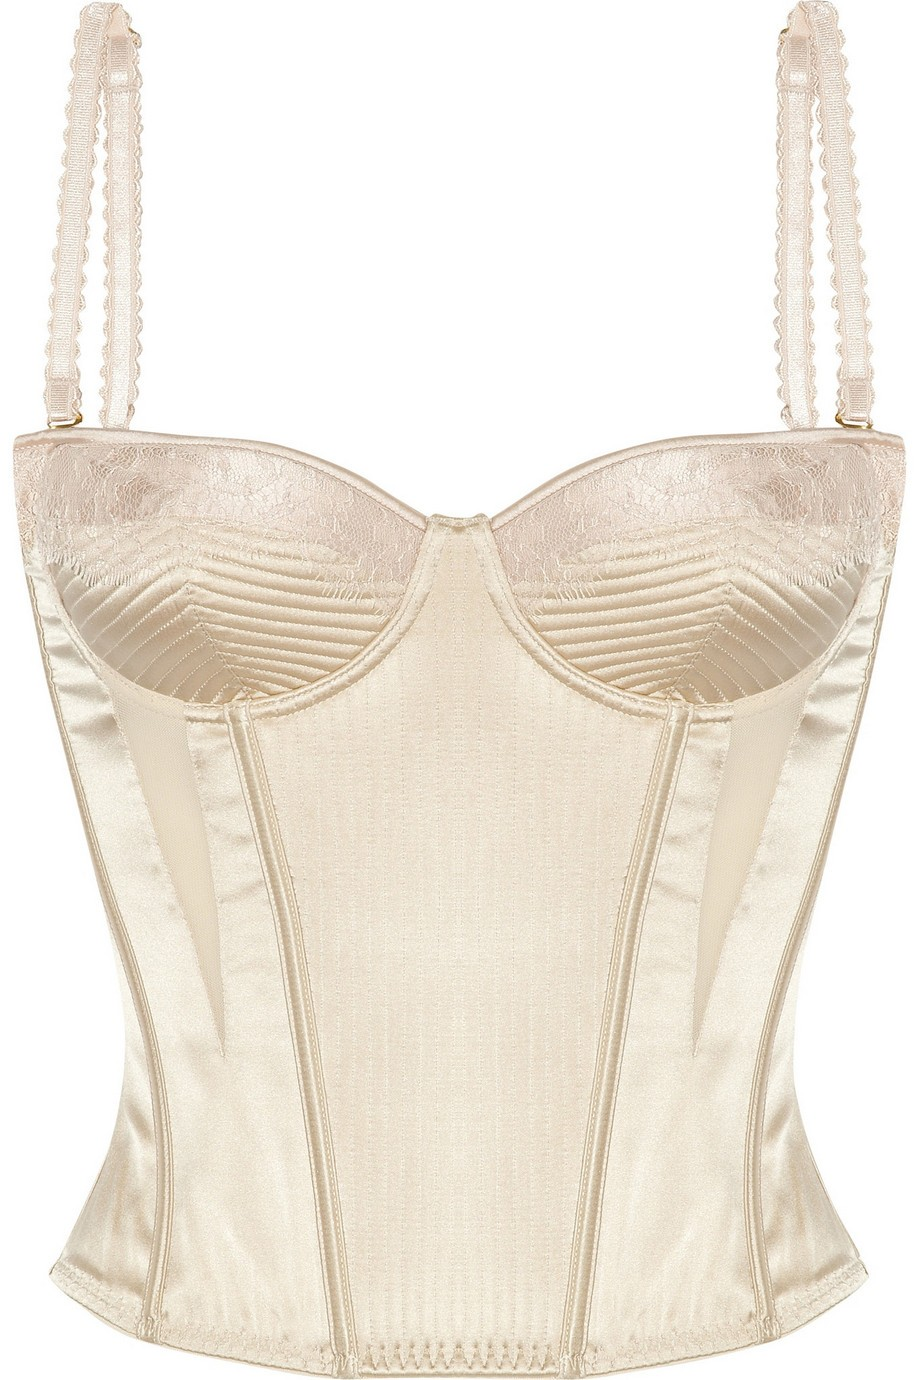 Josephine Marrying satin corset